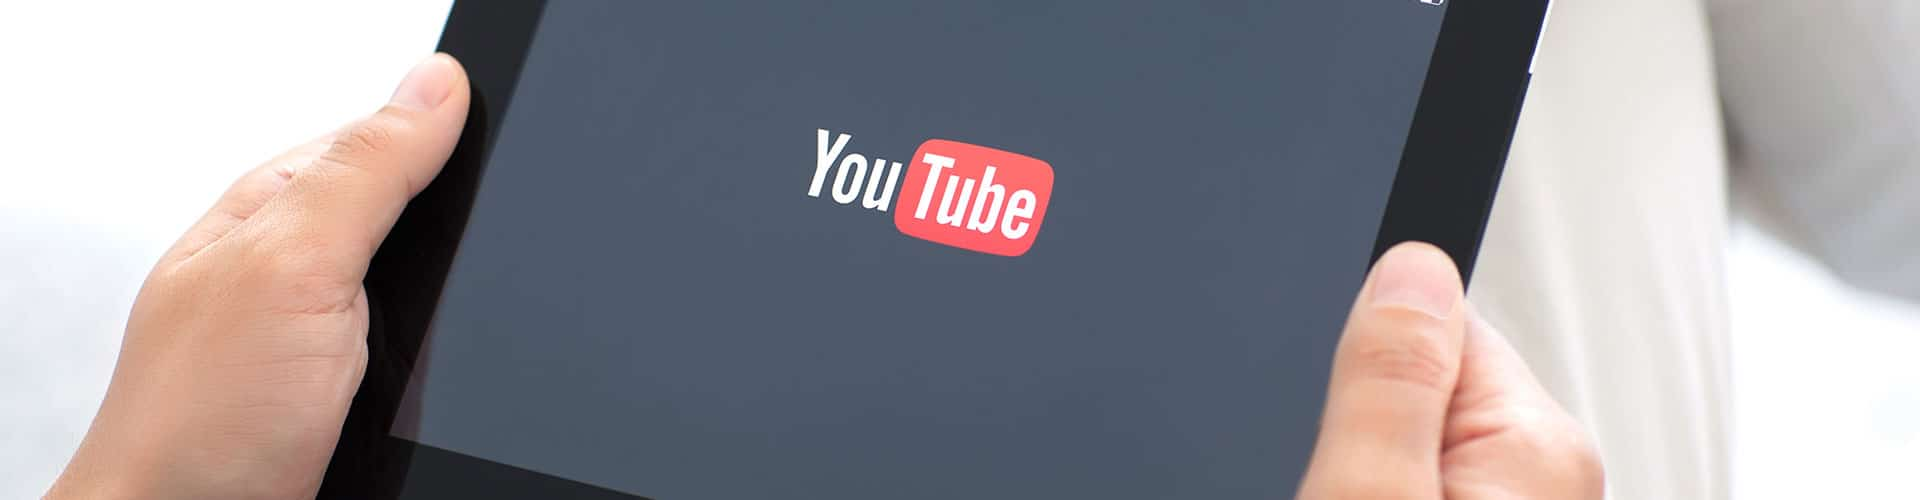 New Insights into Brand Video Consumption on YouTube